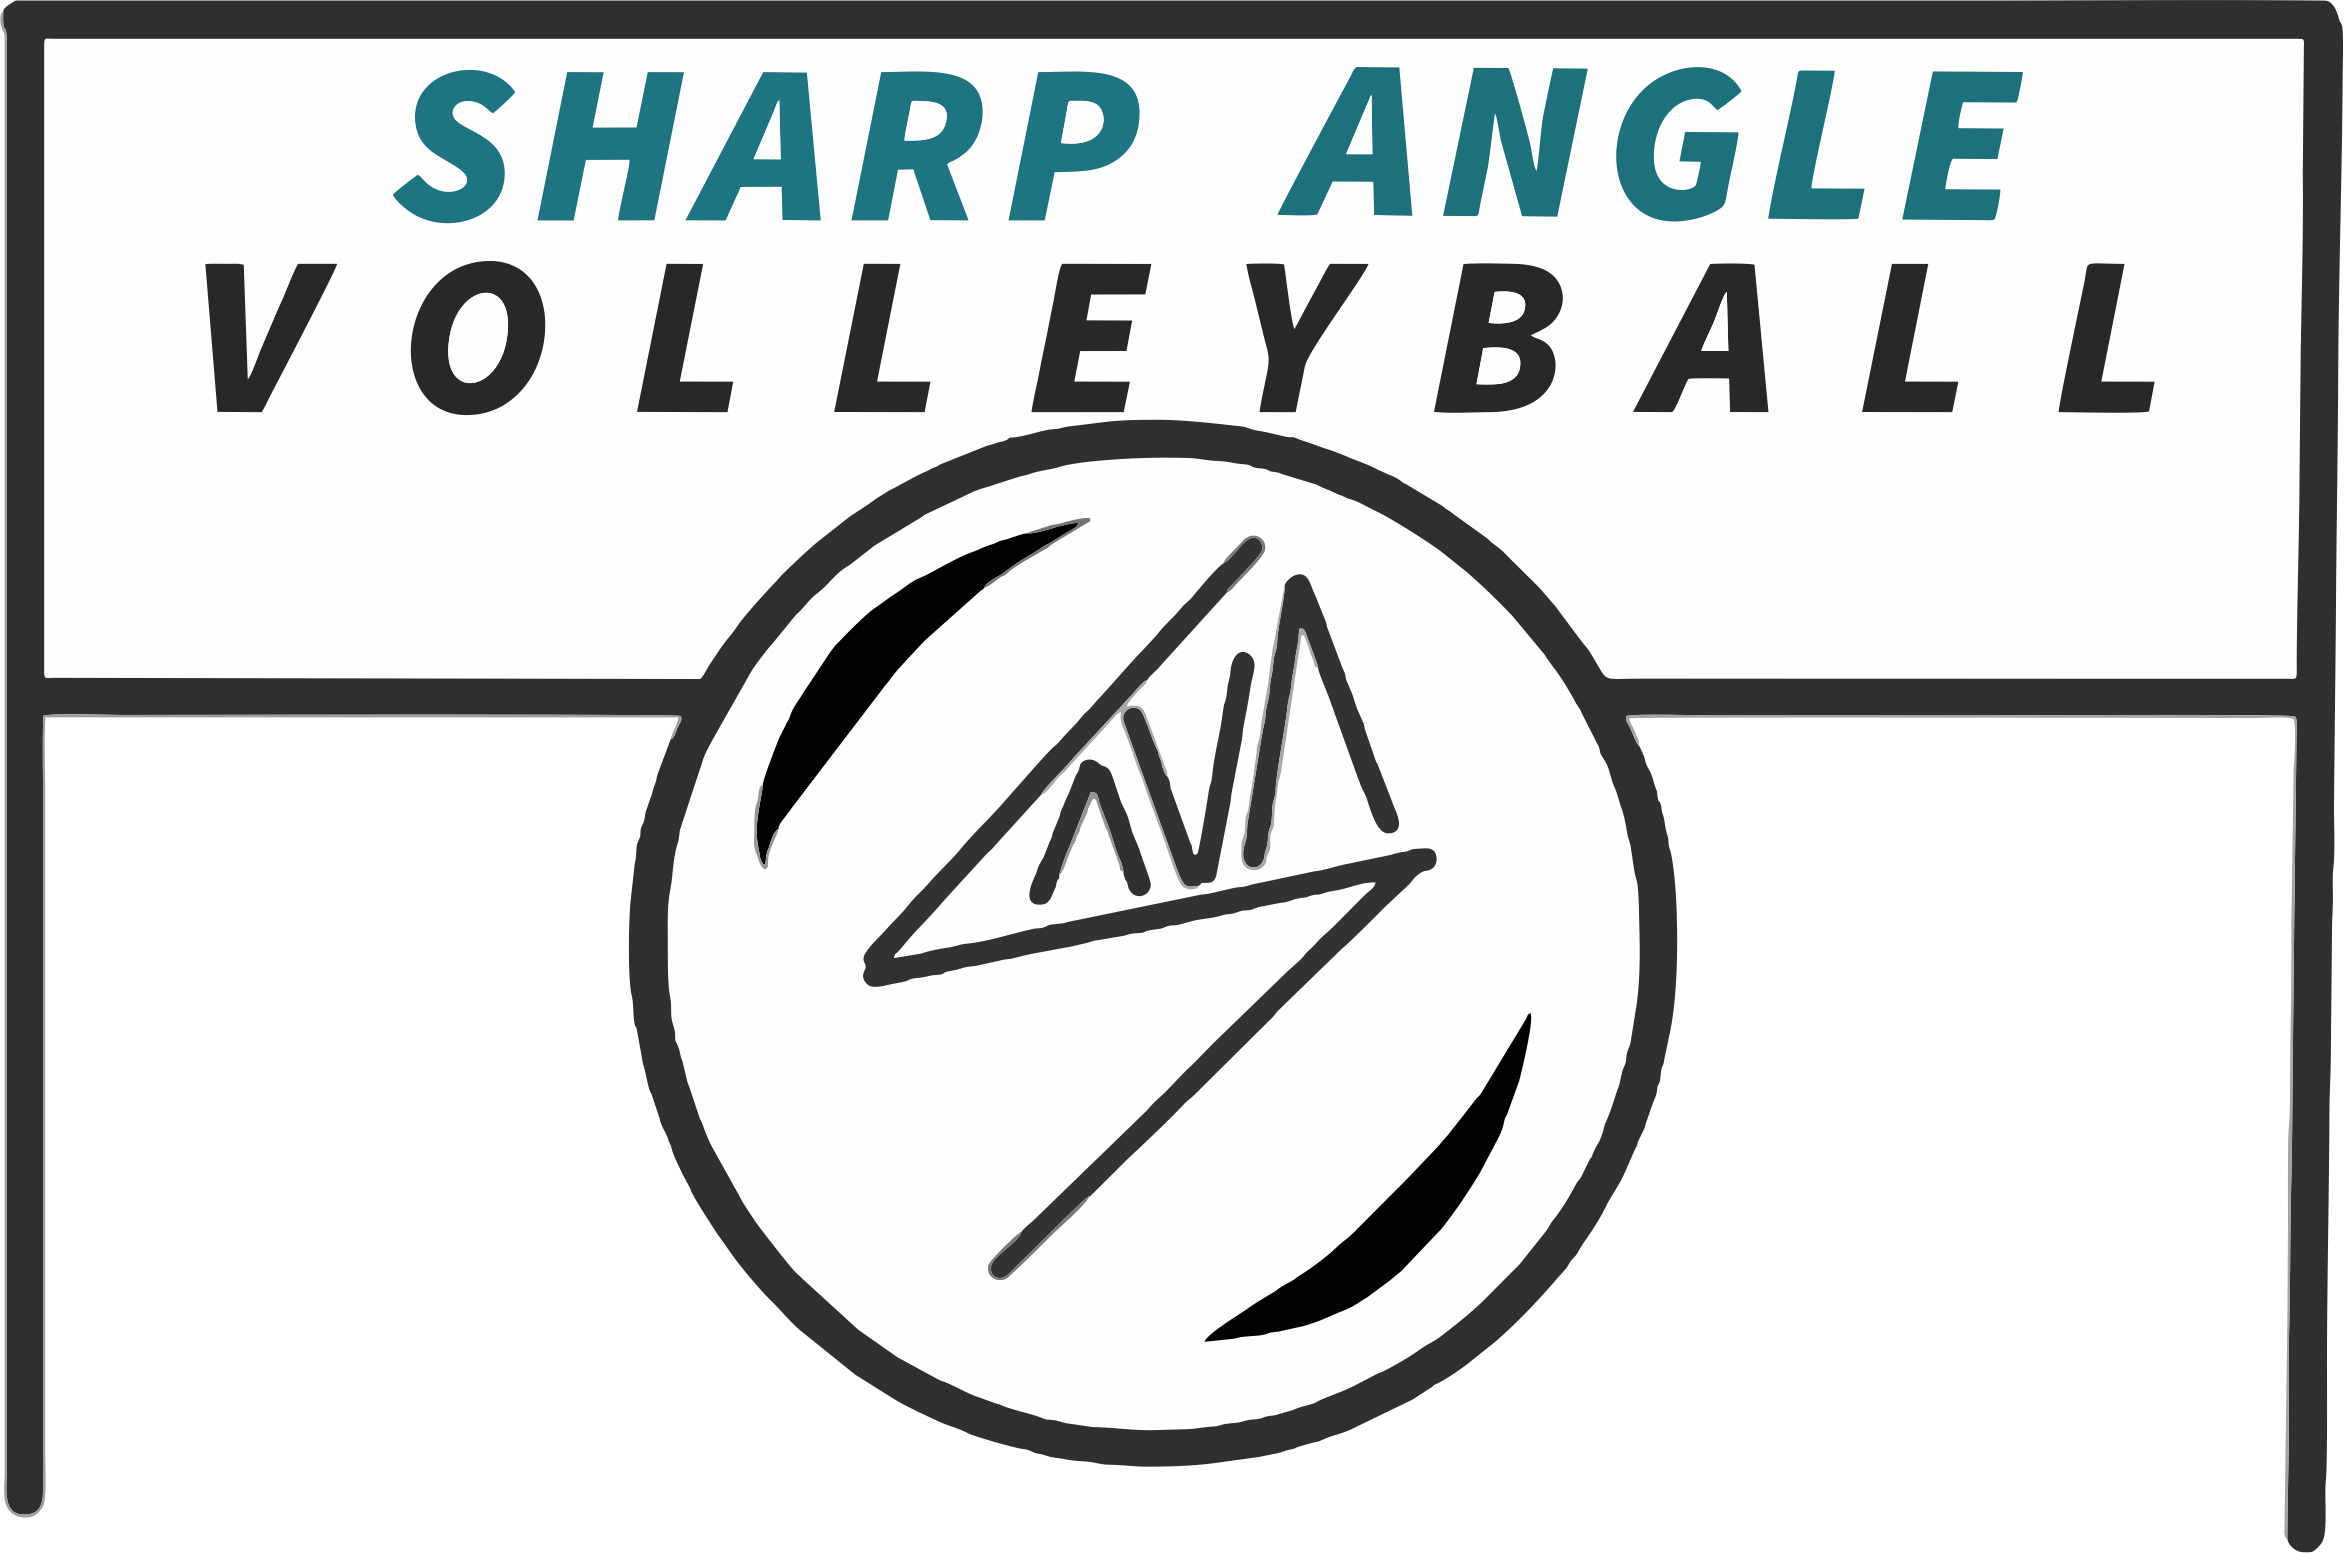 Sharp Angle Volleyball